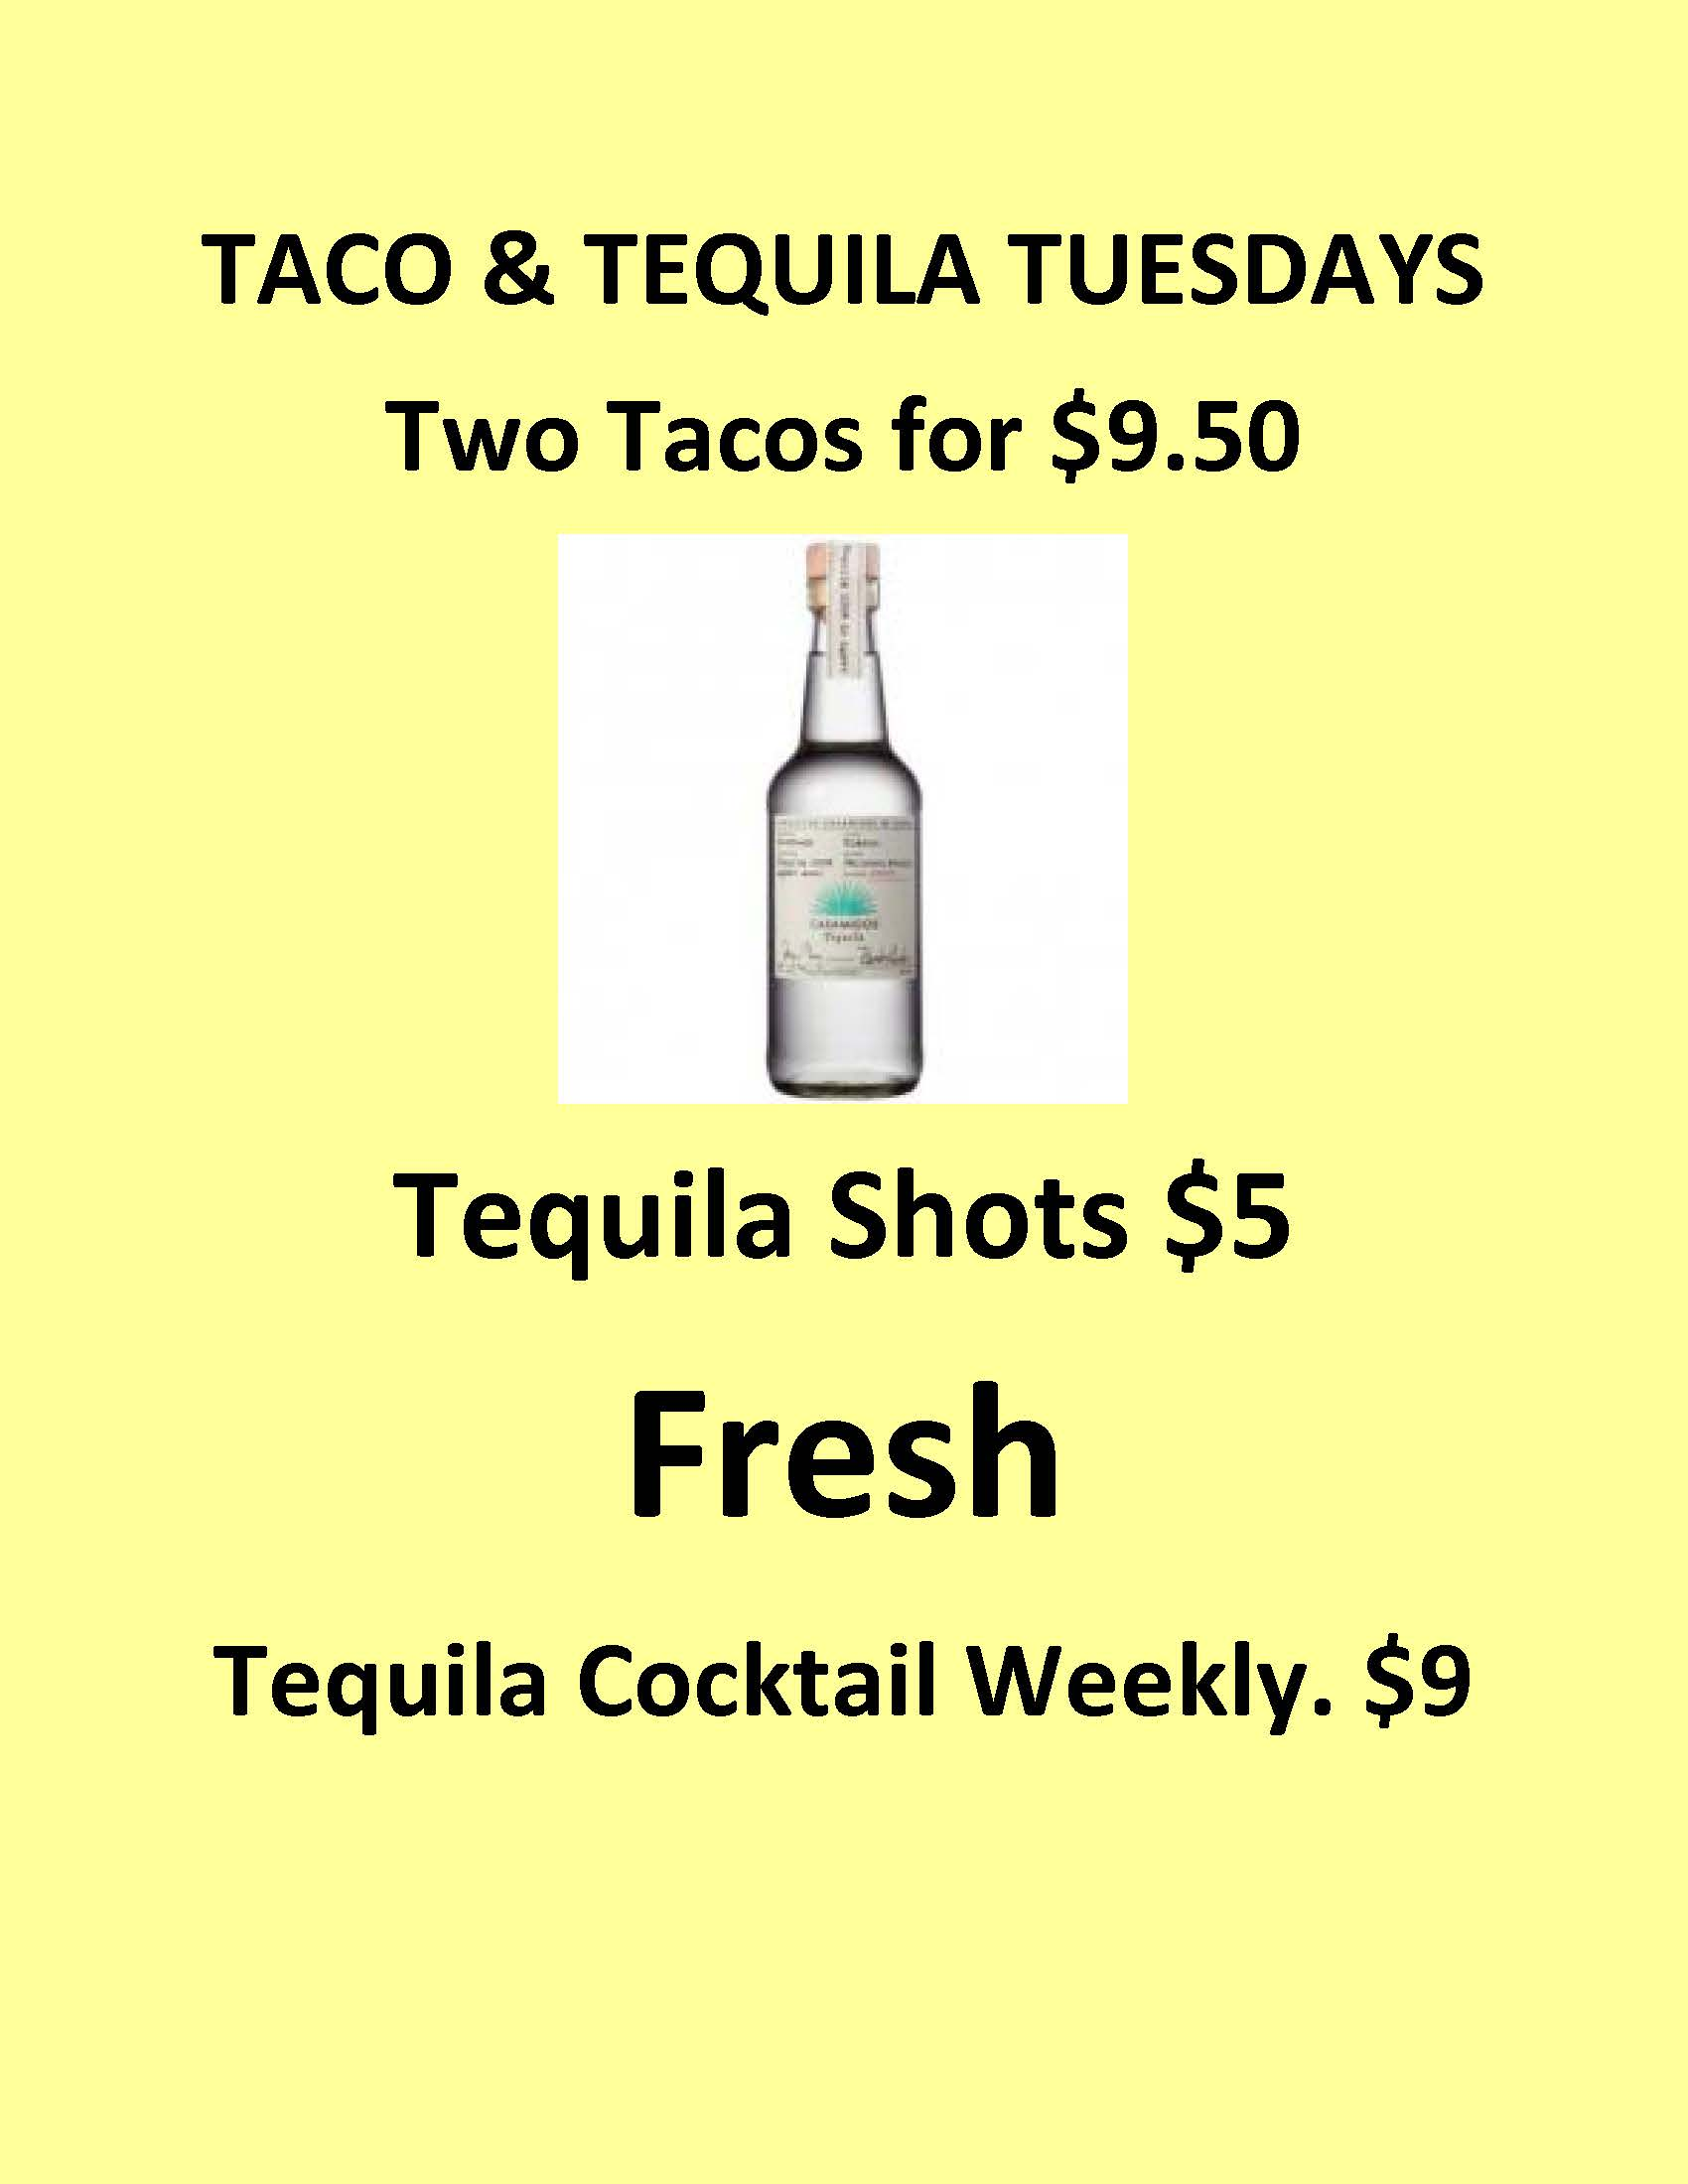 TACO&TEQUILA TUESDAYS.jpg